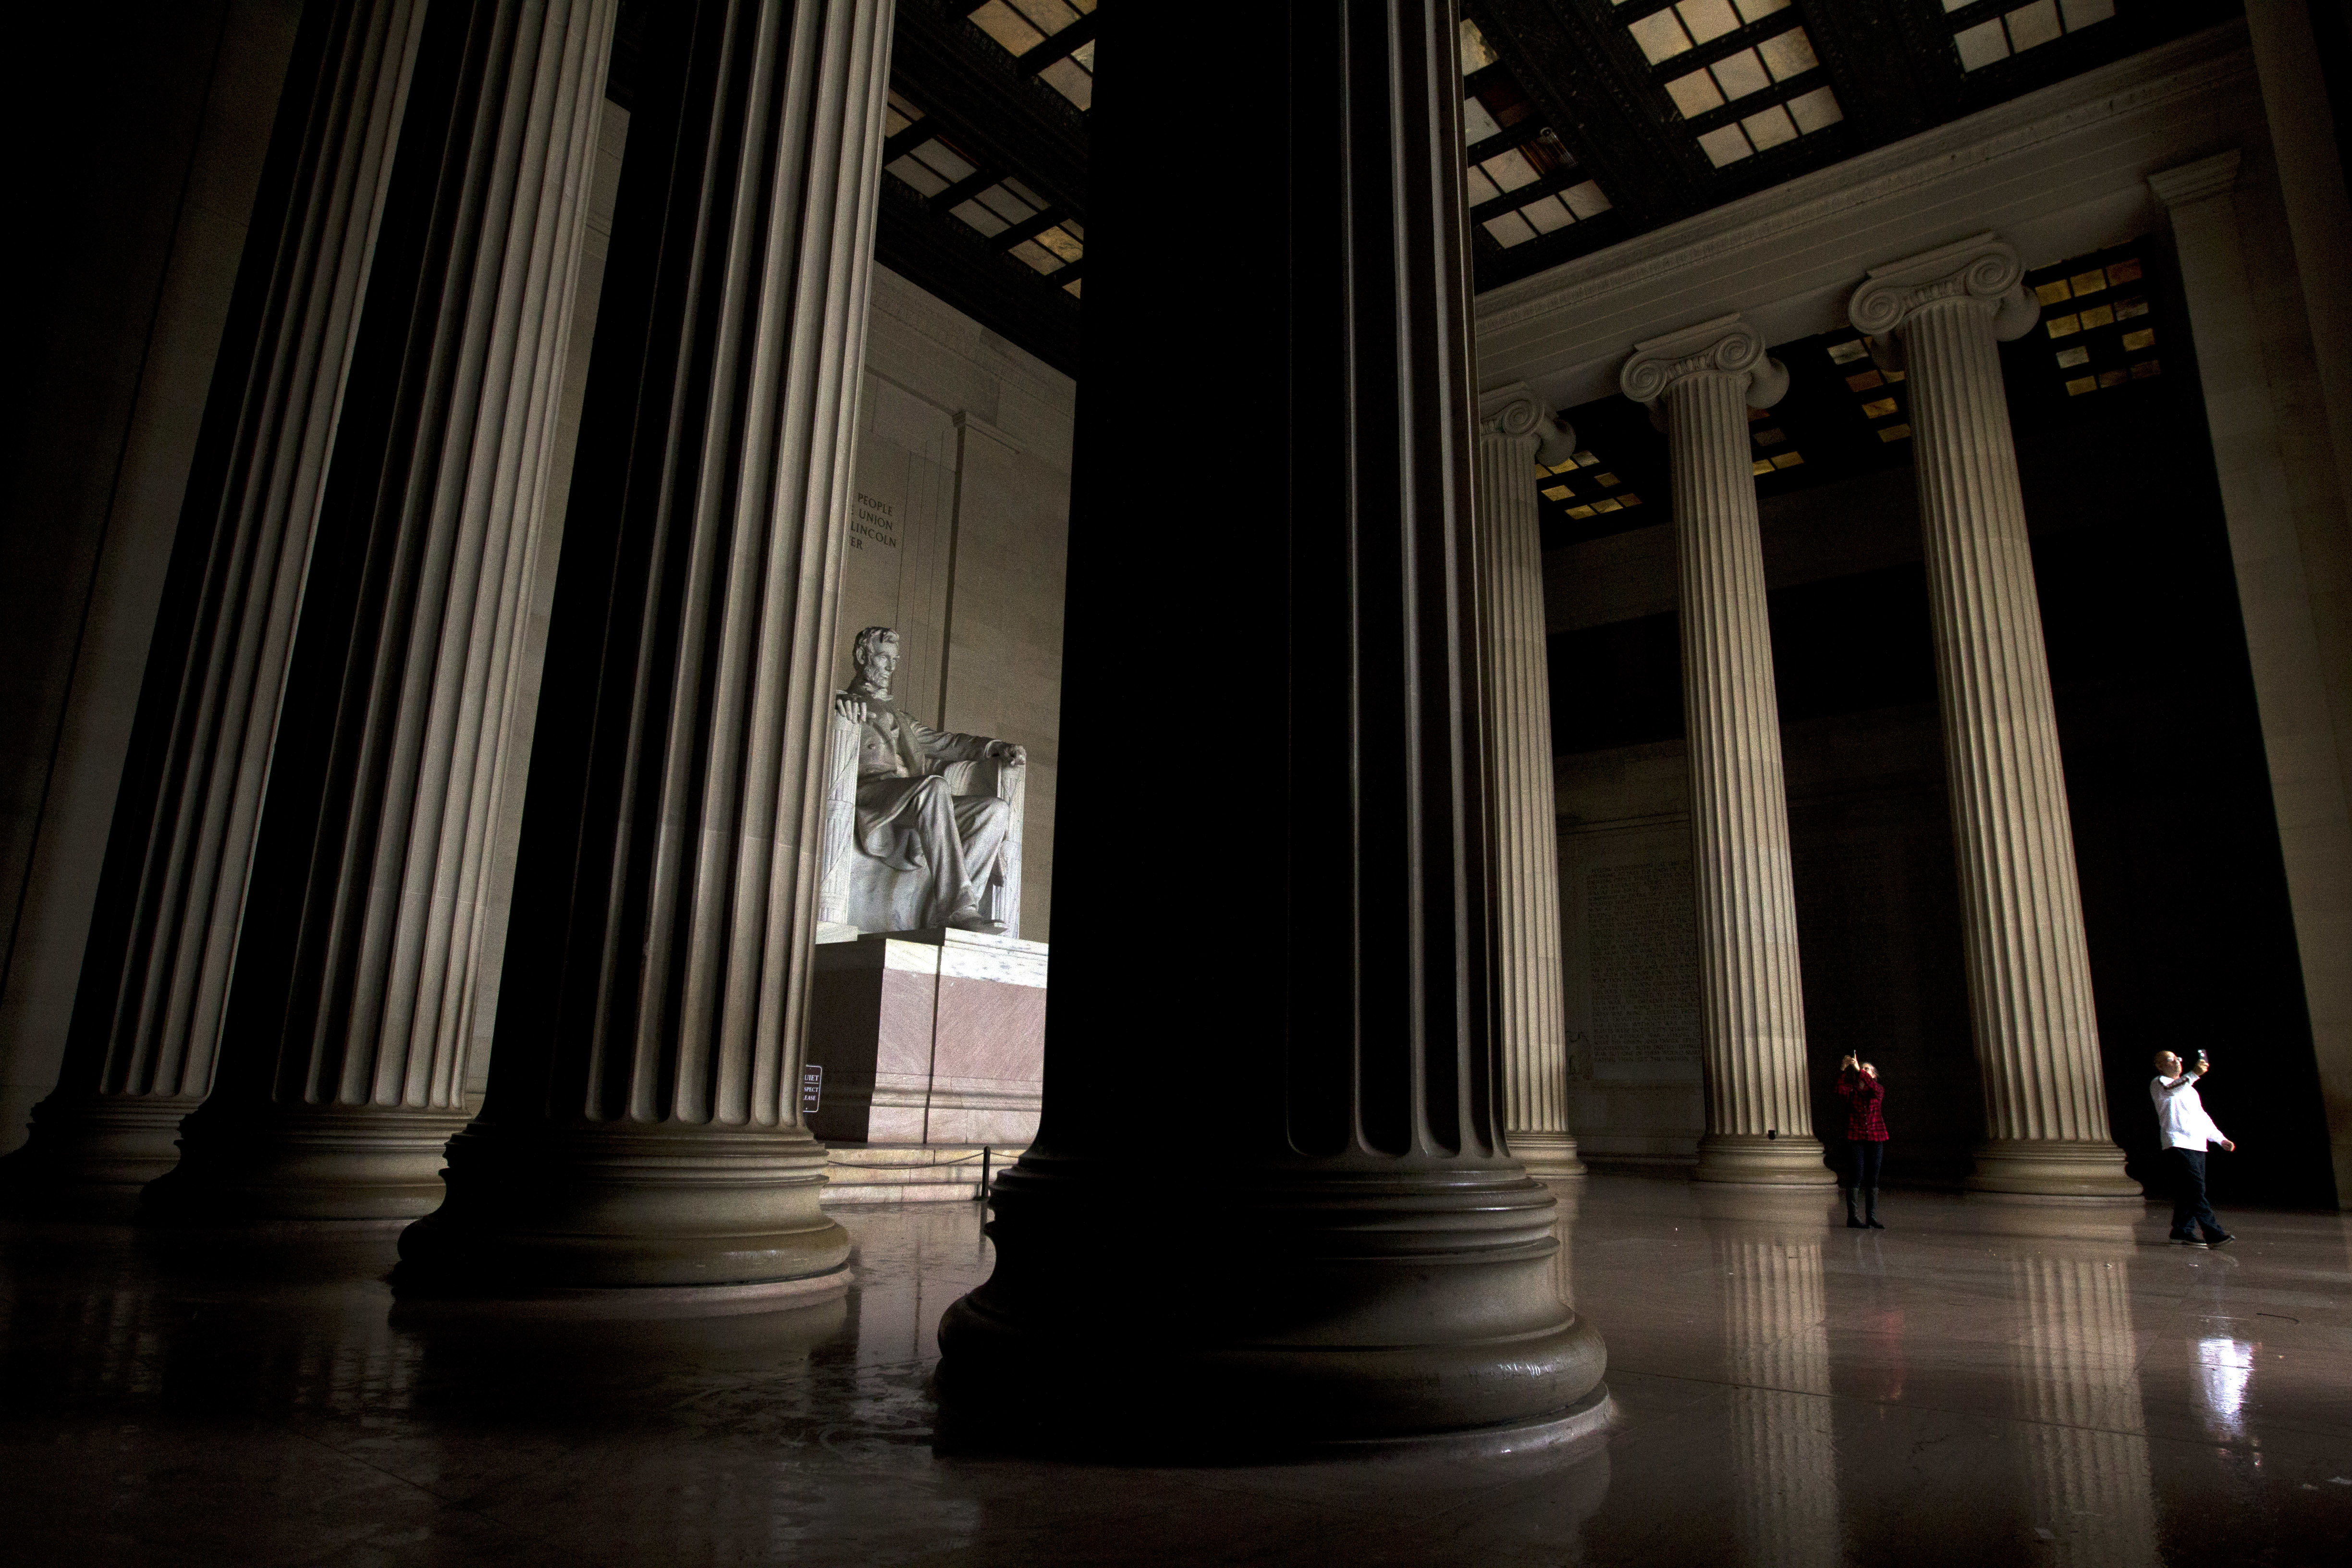 Visitors take their pictures at the Lincoln Memorial in Washington, Tuesday, Jan. 1, 2019, as a partial government shutdown stretches into its third week.